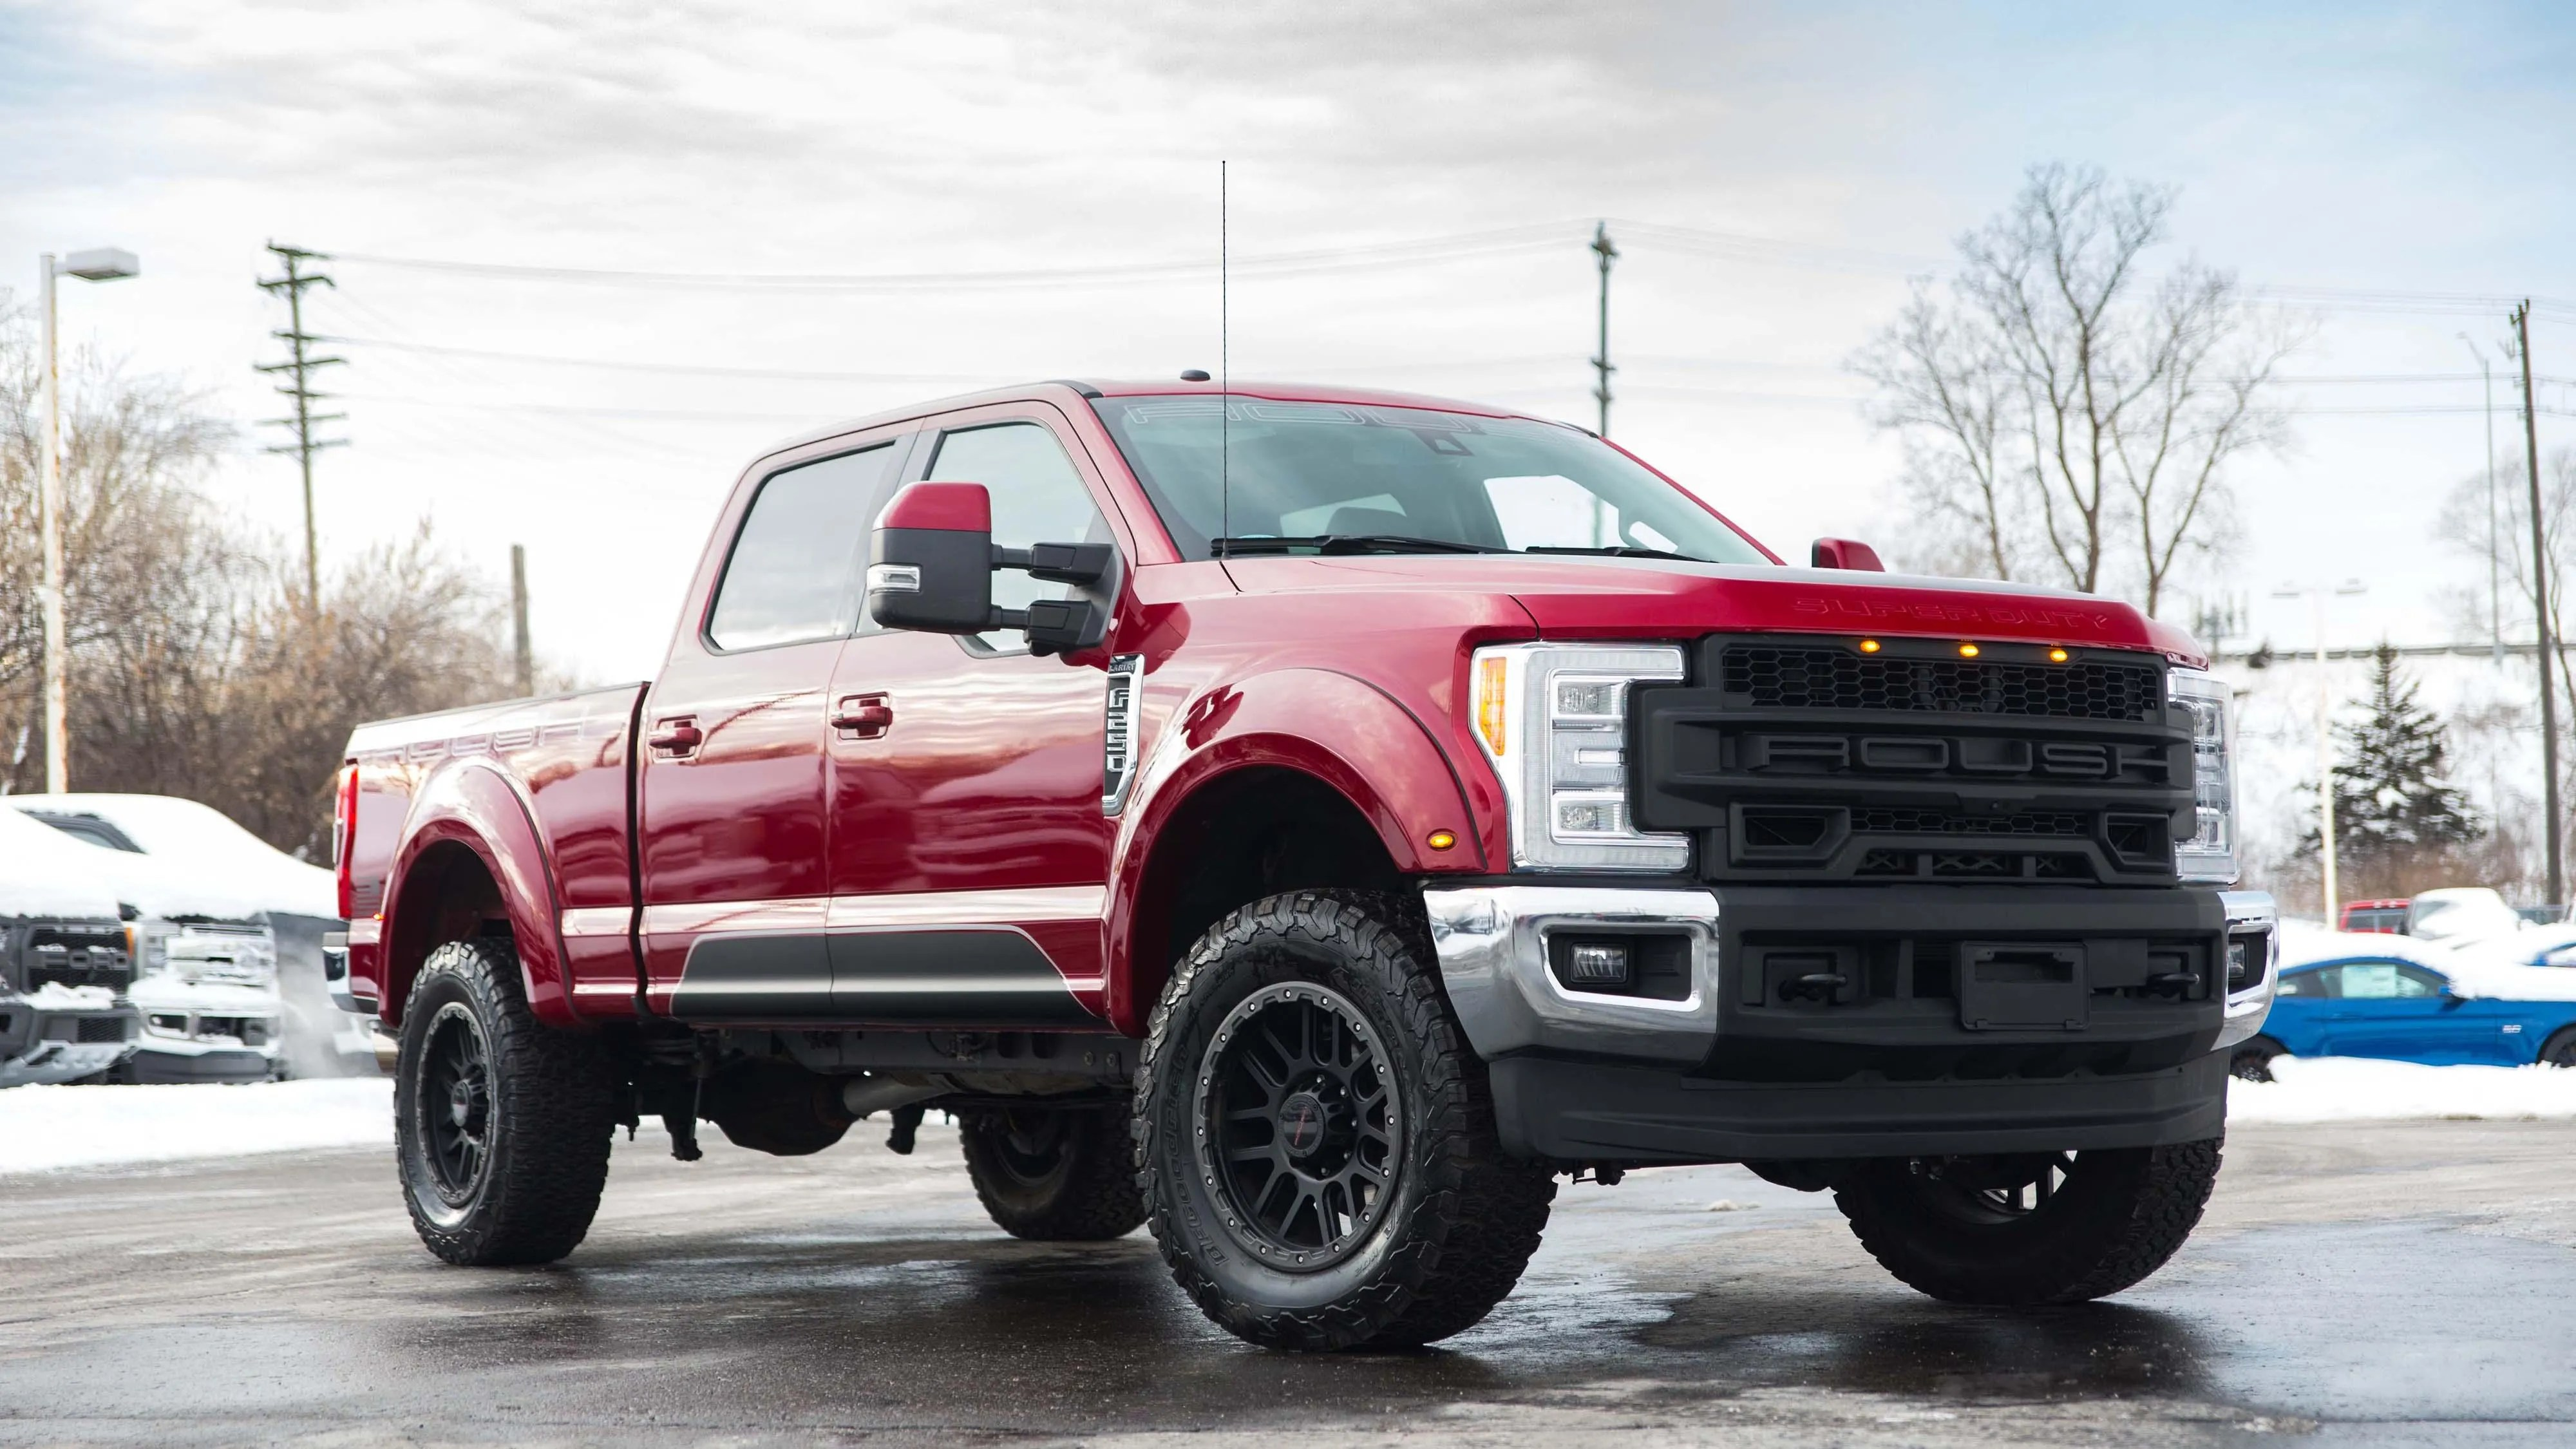 roush unleashes the beast in the ford super duty f 250 [ 3200 x 1680 Pixel ]